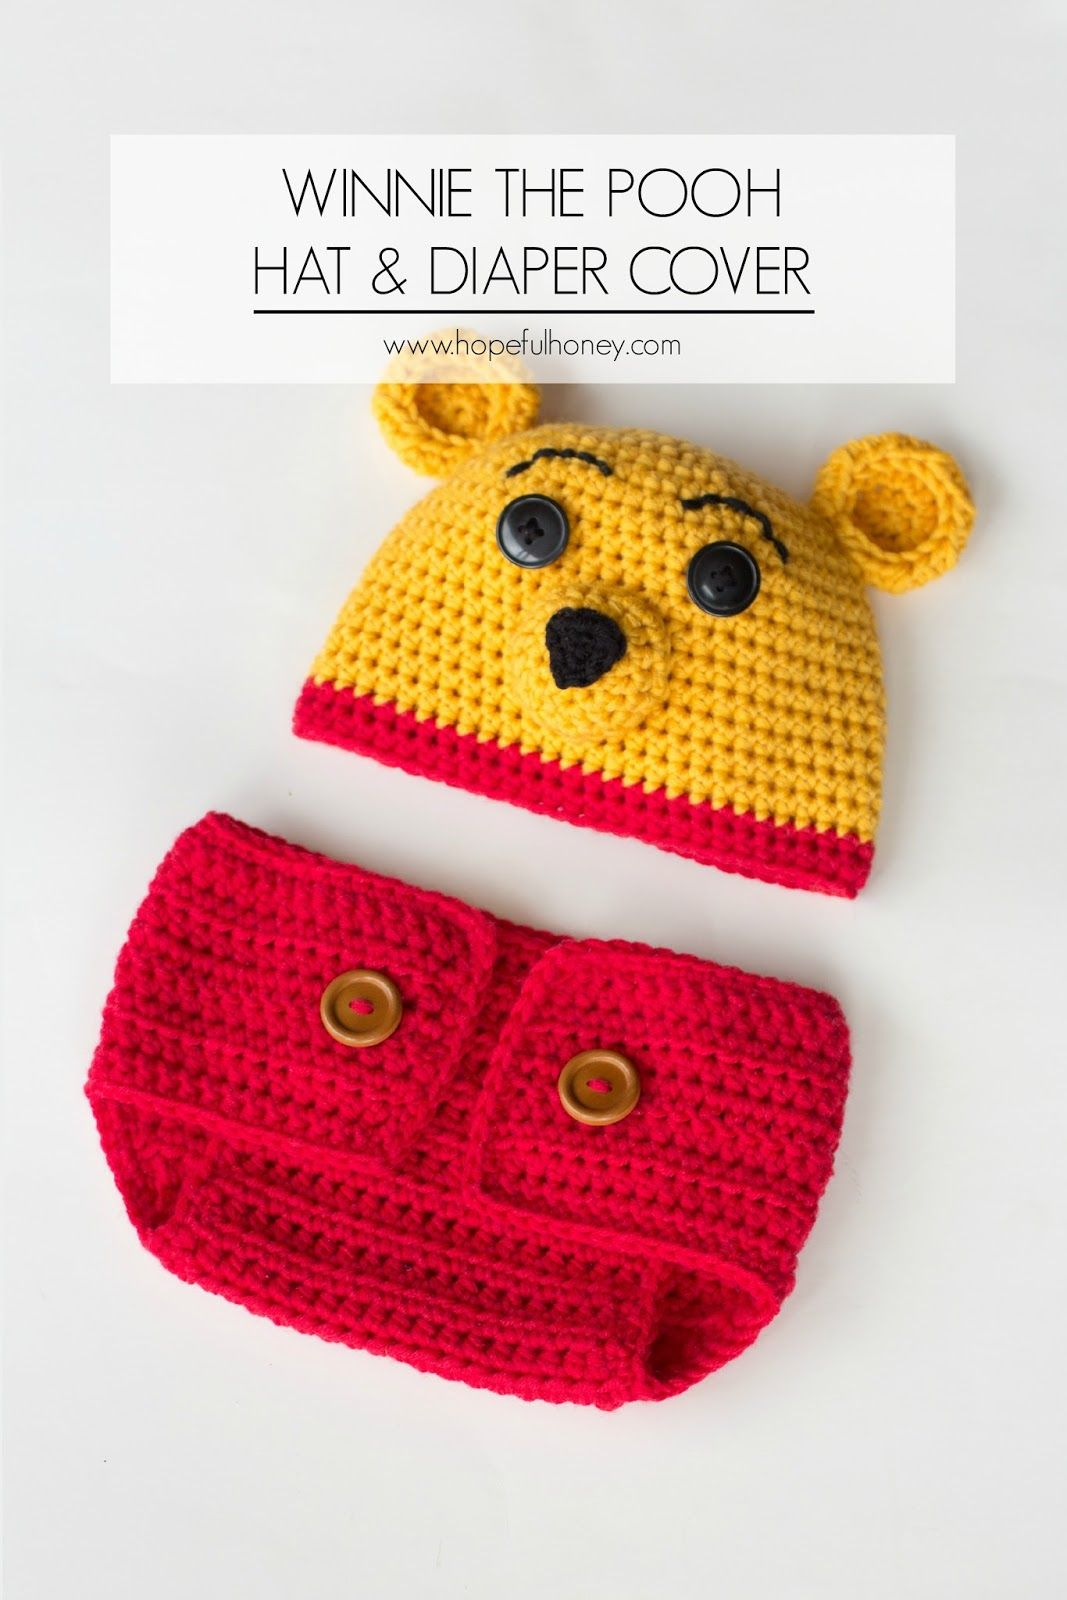 Winnie the pooh inspired hat diaper cover free crochet pattern winnie the pooh inspired hat diaper cover free crochet pattern bankloansurffo Gallery